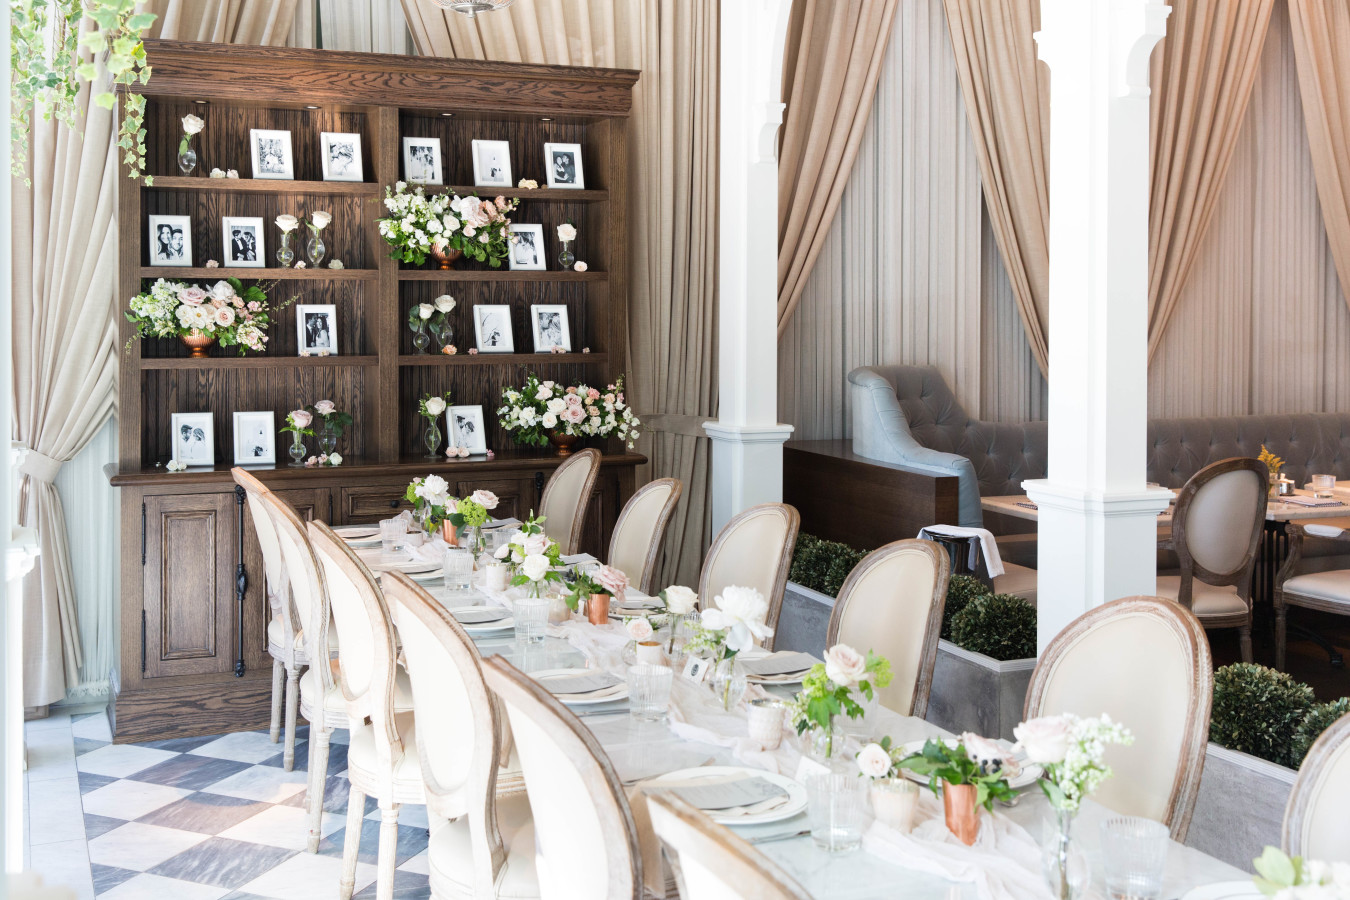 bridal-brunch-table http://itgirlweddings.com/tips-for-creating-a-photo-worthy-bridal-shower/